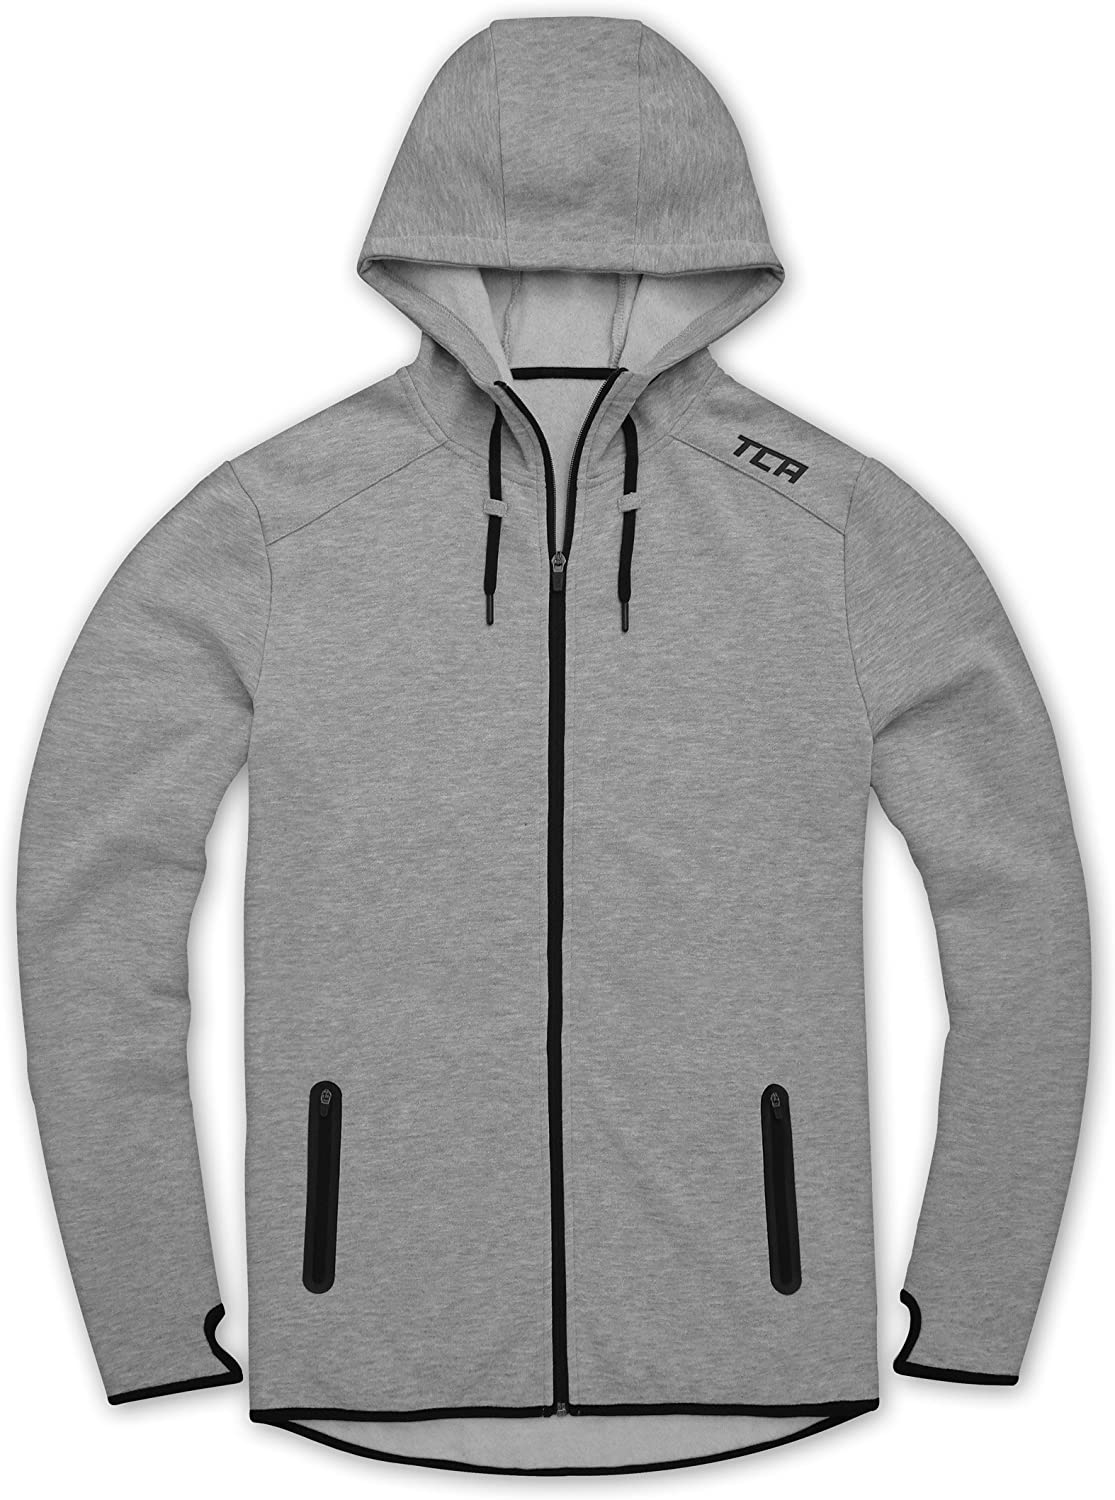 TCA Men/'s Revolution Tech Thermal Running Hoodie with Zip Pockets